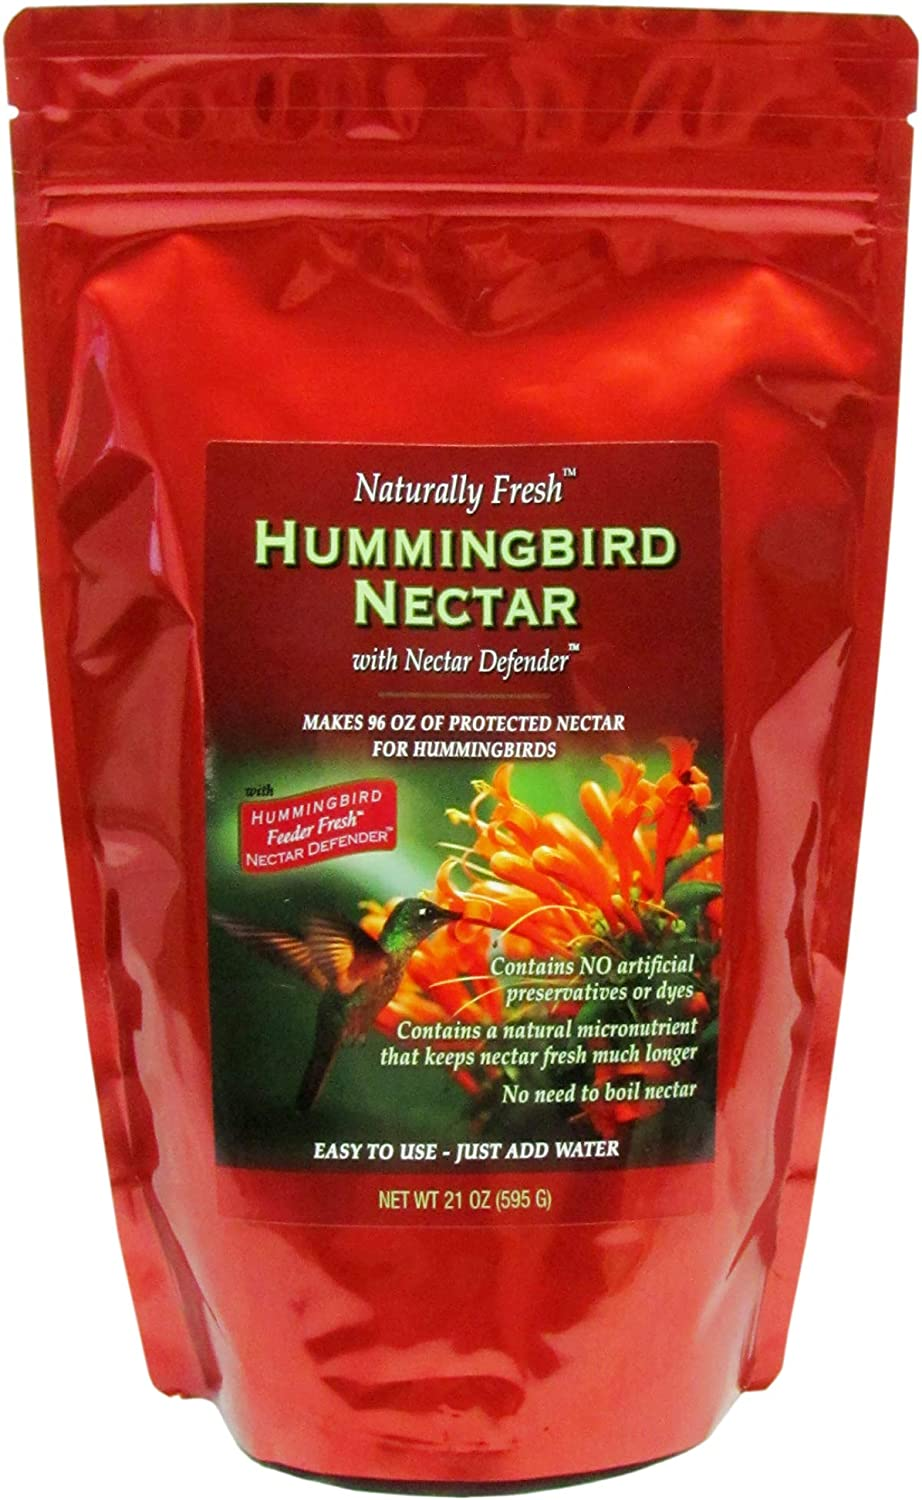 Naturally Fresh Hummingbird Nectar with Nectar Defender, Makes 96 ounces of Clear Hummingbird Nectar, Lasts Longer in Hummingbird Feeders